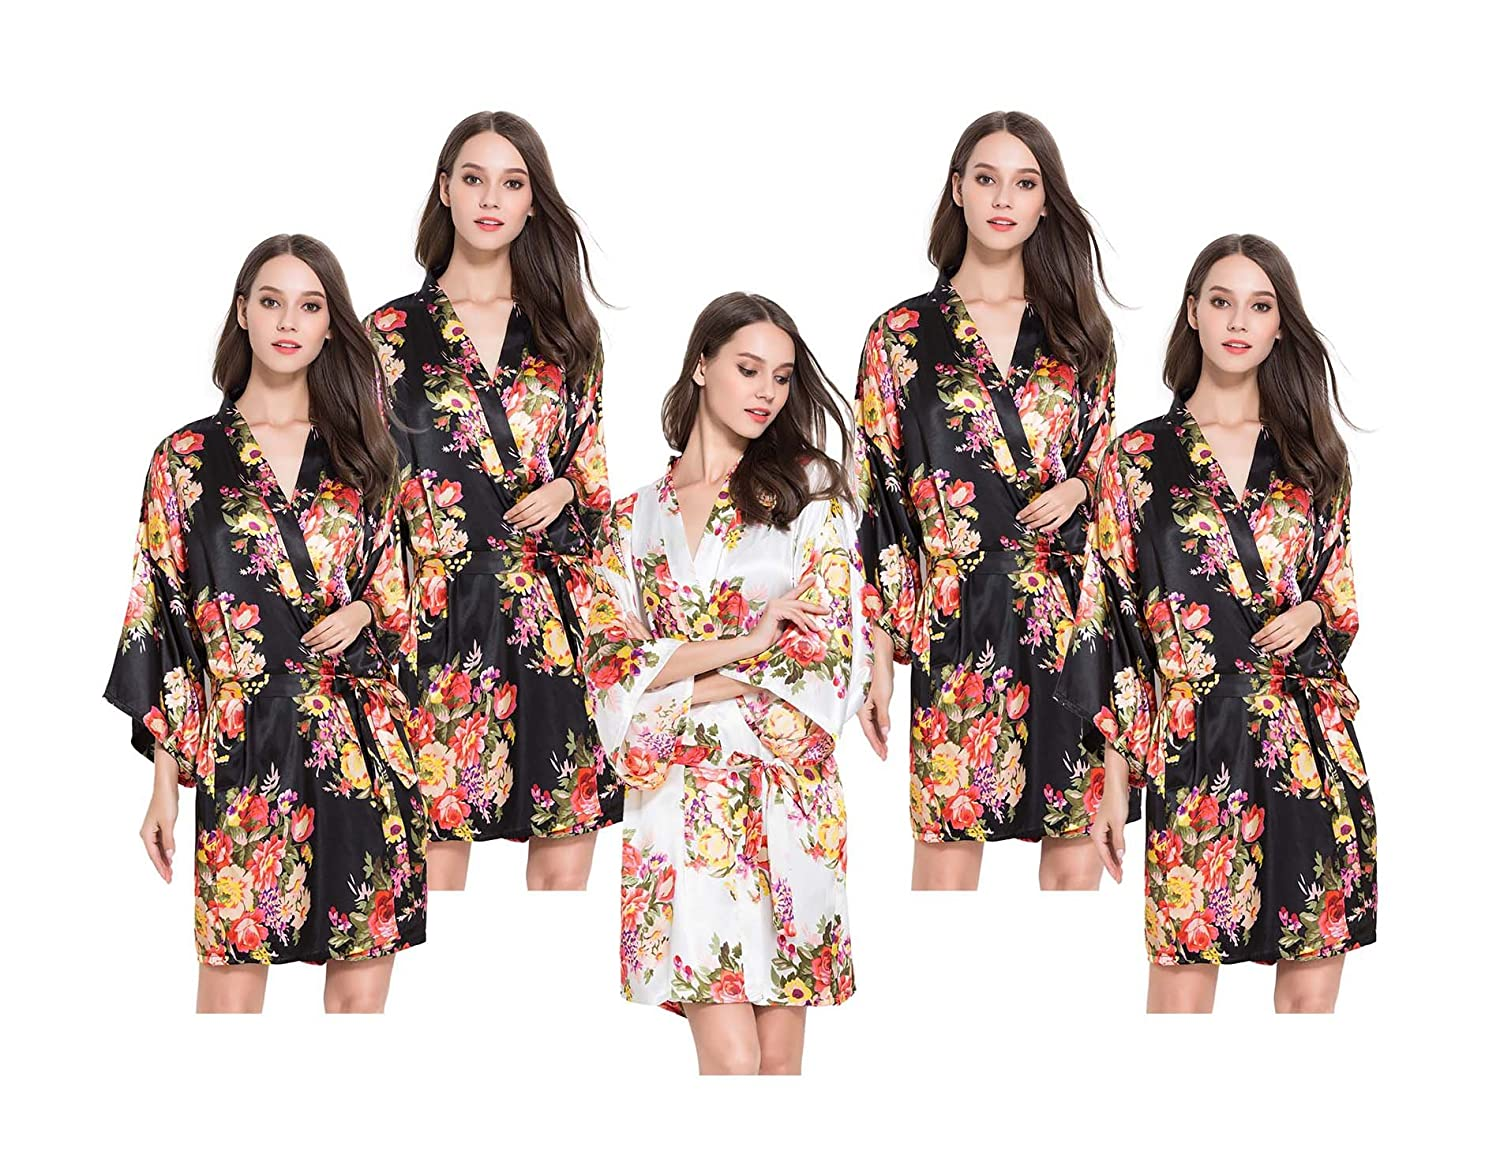 Set of 5 Satin FLORAL Kimono Robes, Hen Party Getting Ready Robes ...